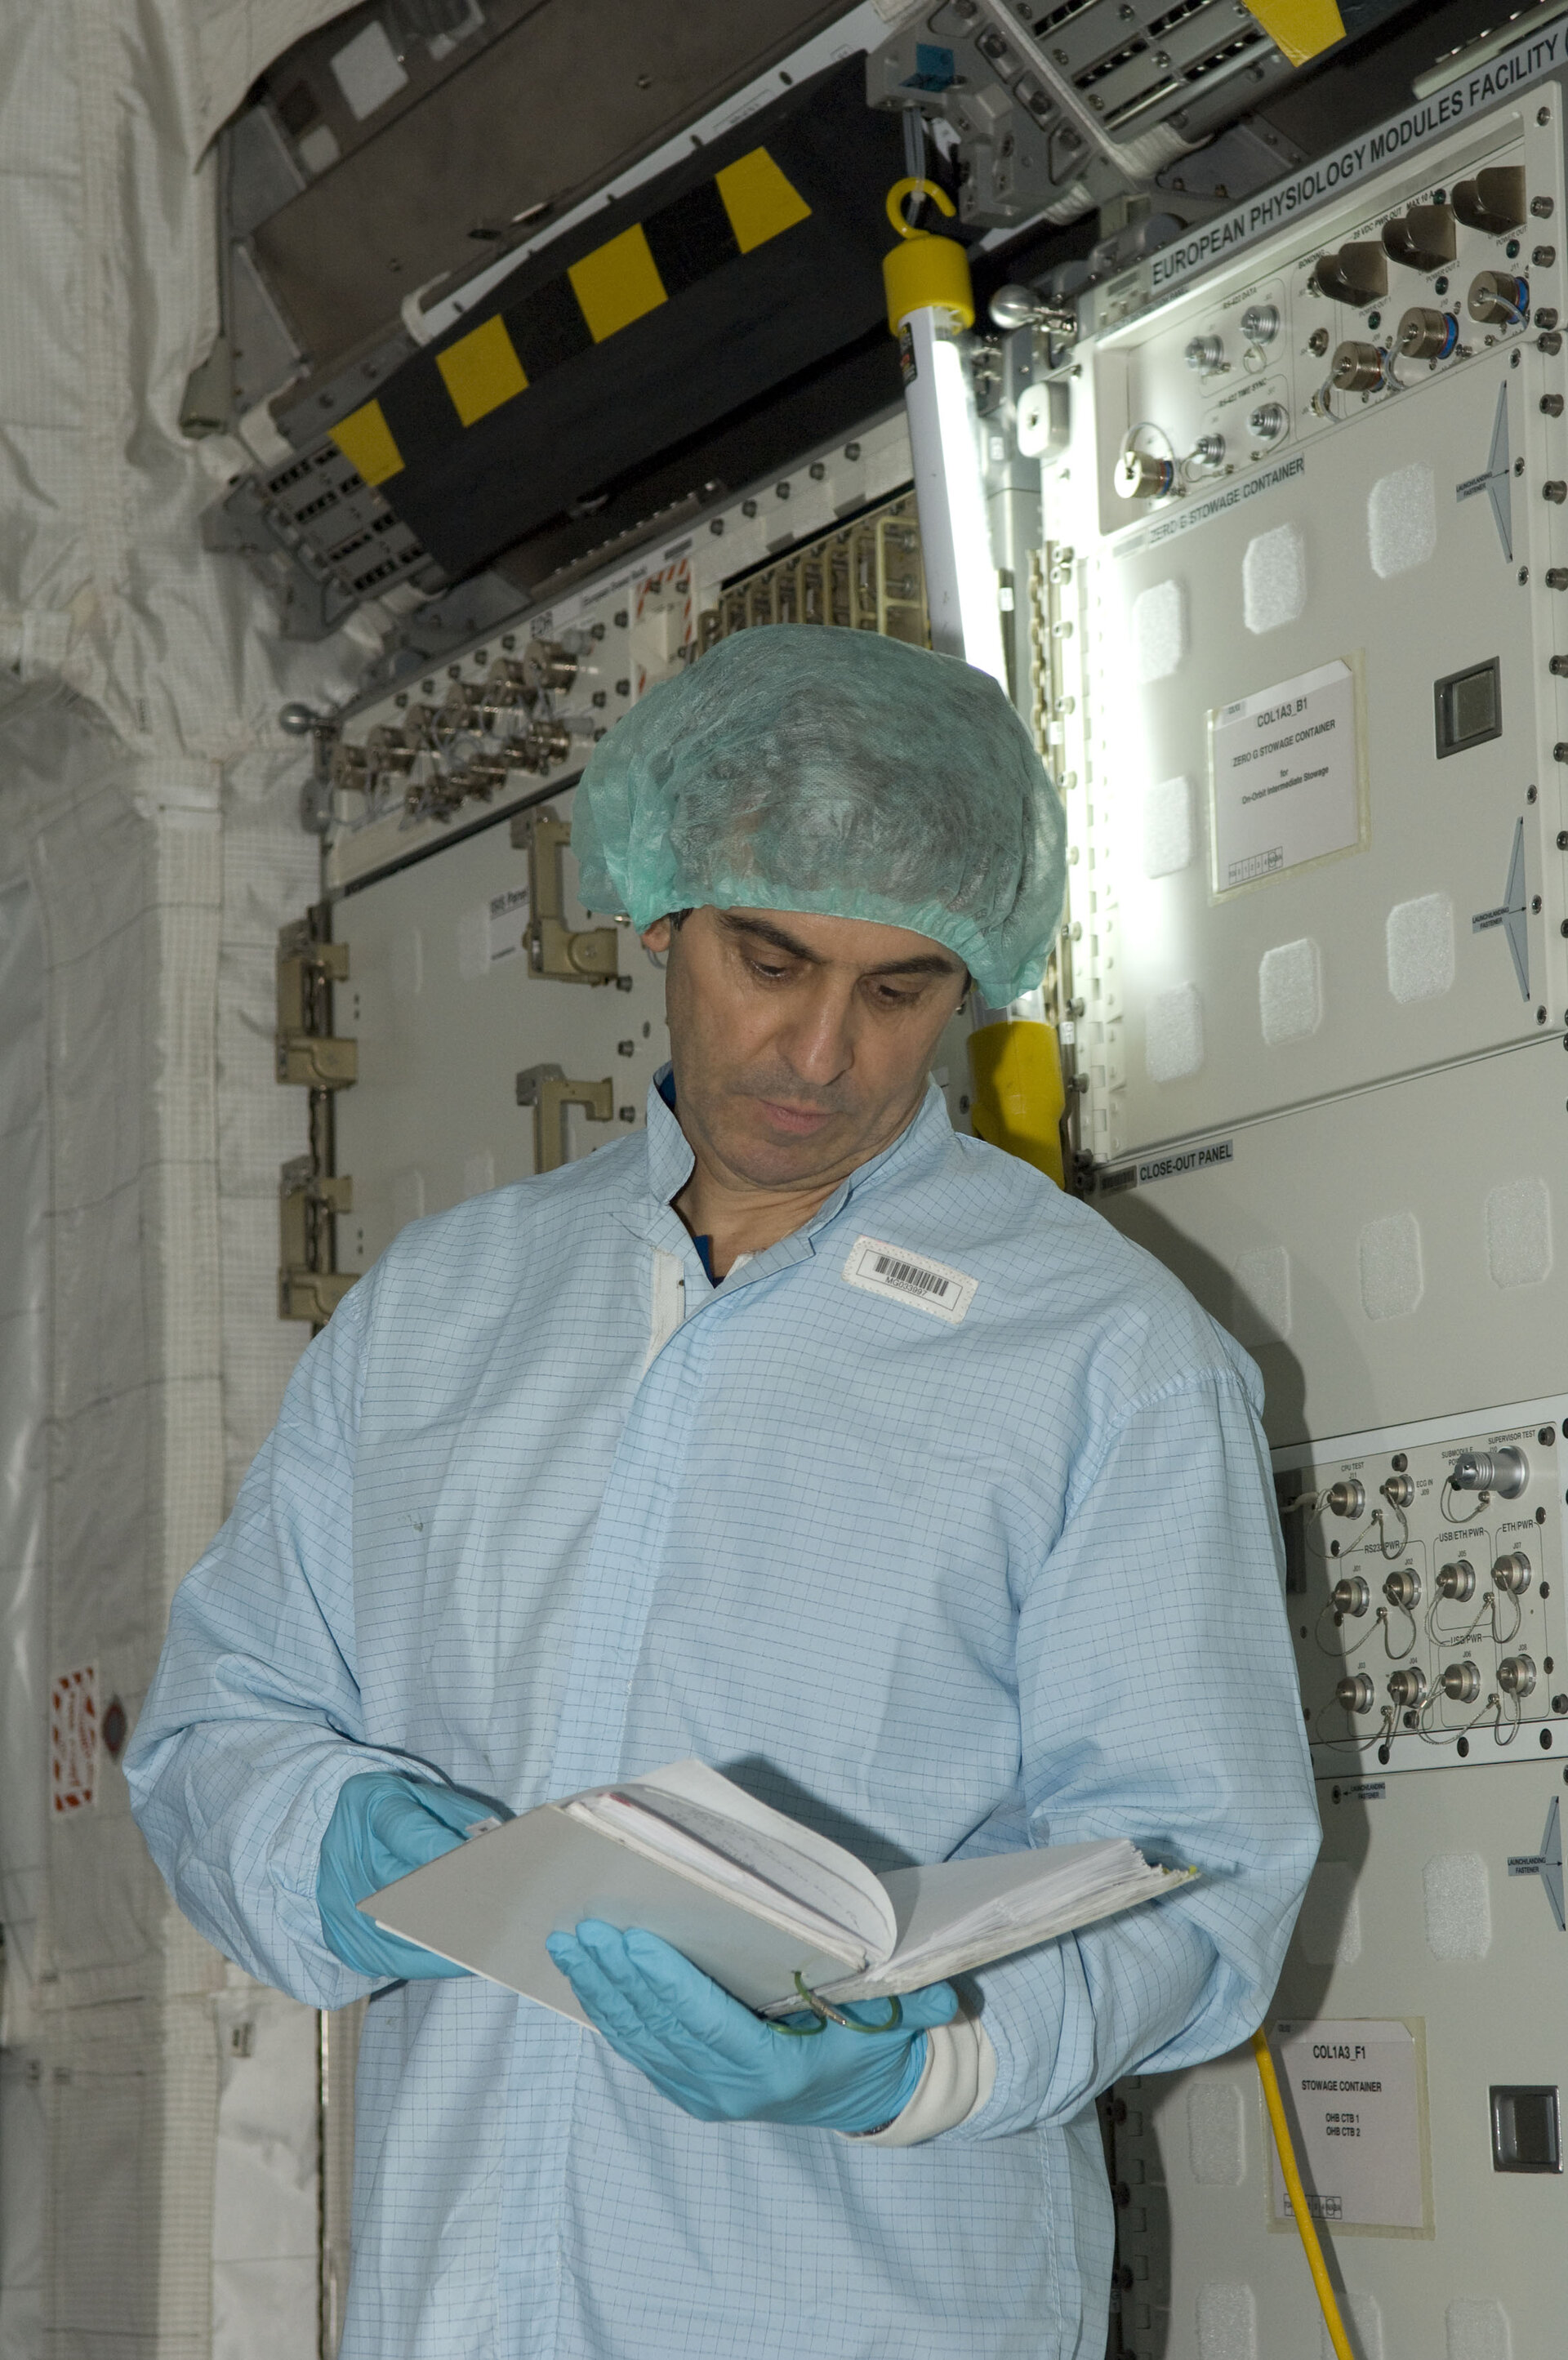 ESA astronaut Leopold Eyharts consults documentation during an inspection of interior European Columbus laboratory